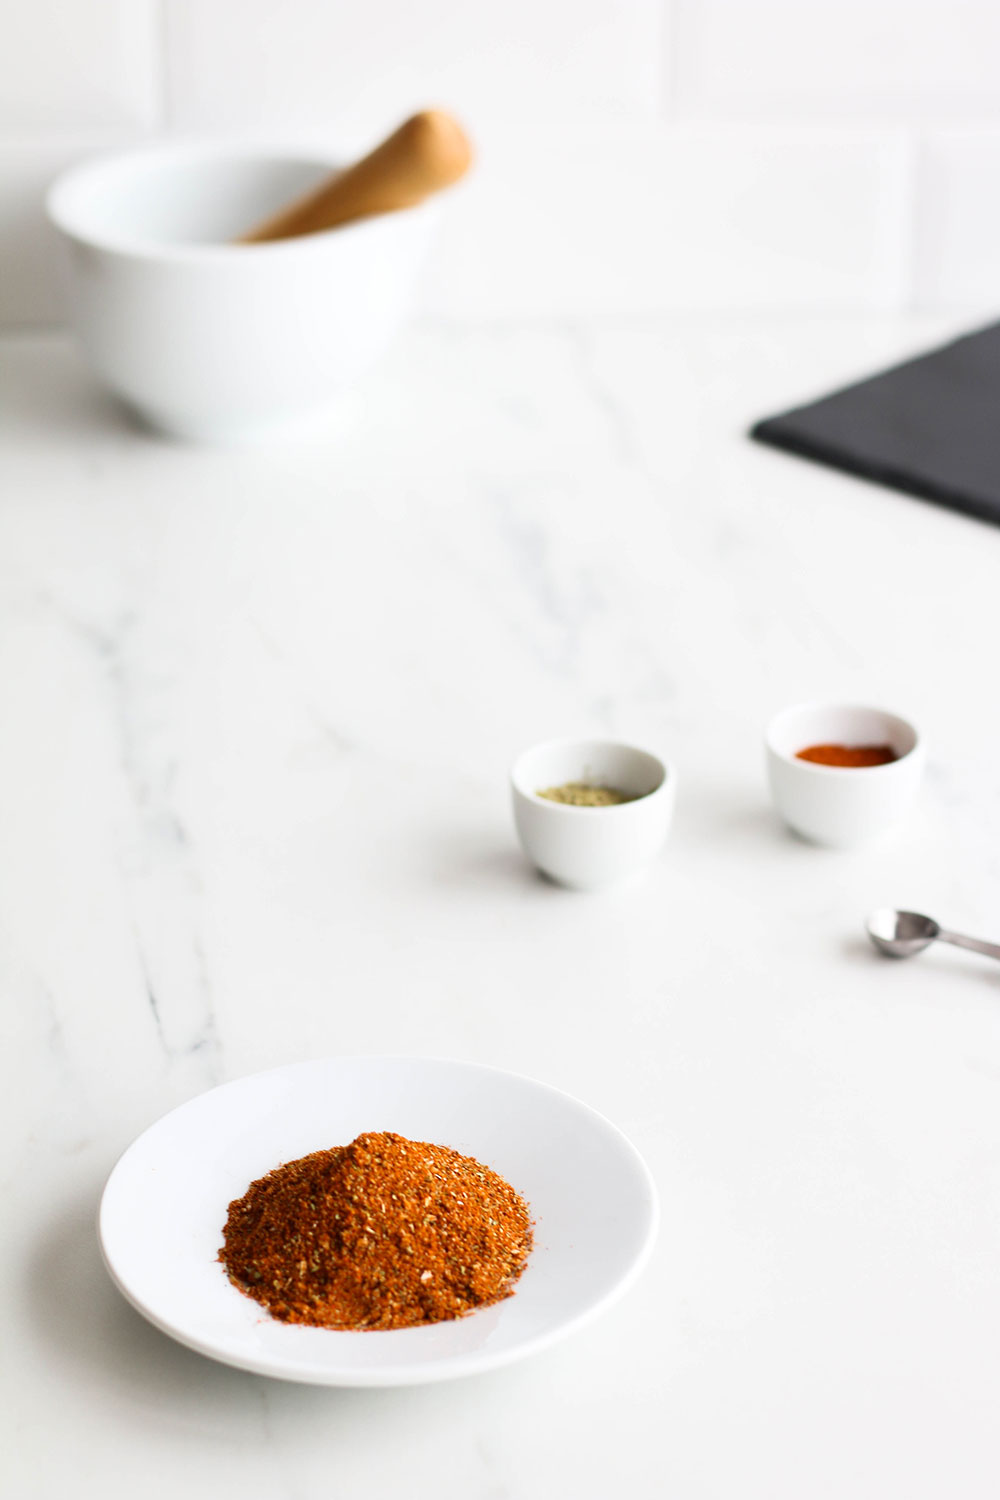 Homemade Mexican spice mix recipe: Great for seasoning tacos, enchiladas and stir fries! https://www.spotebi.com/recipes/mexican-spice-mix-recipe/